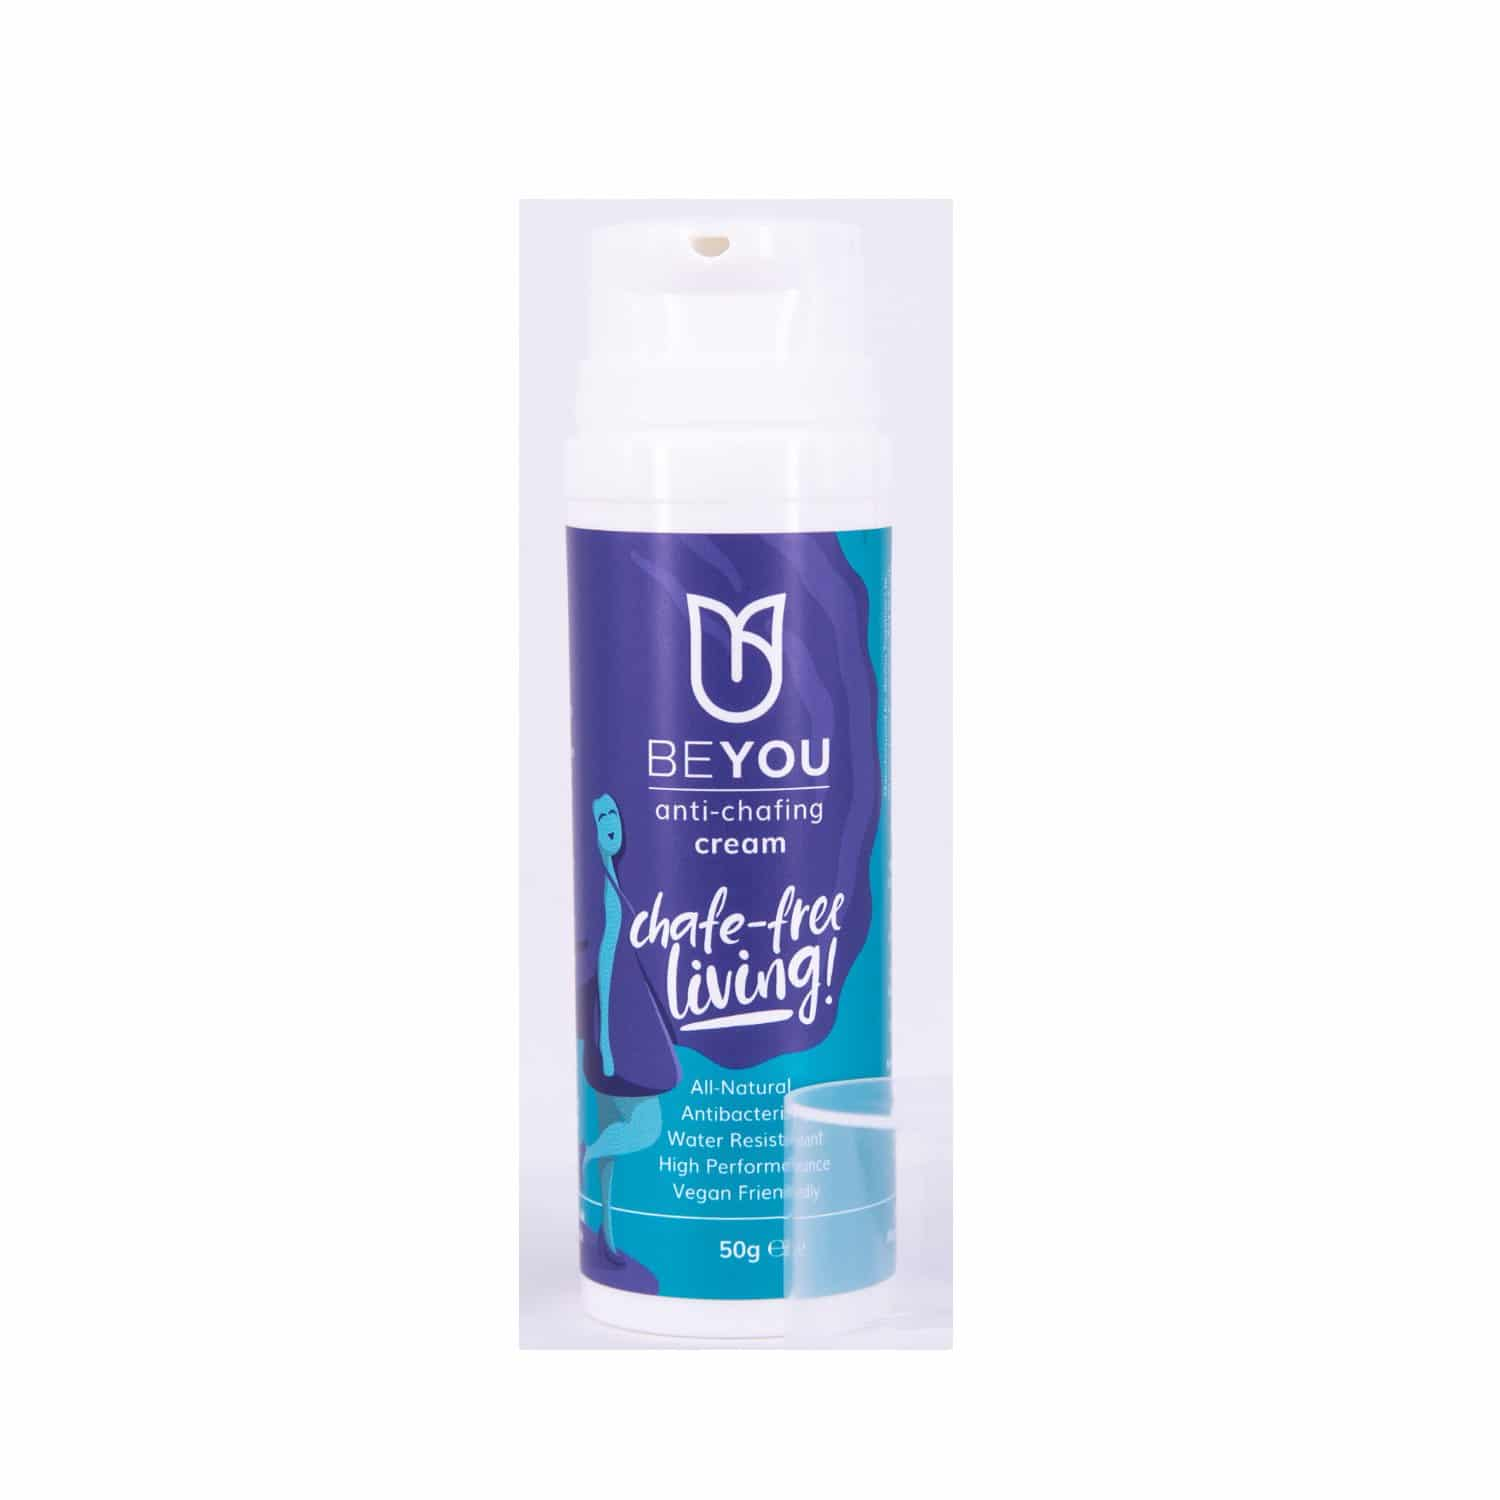 Be You Chafing Cream 50G | Health & Her